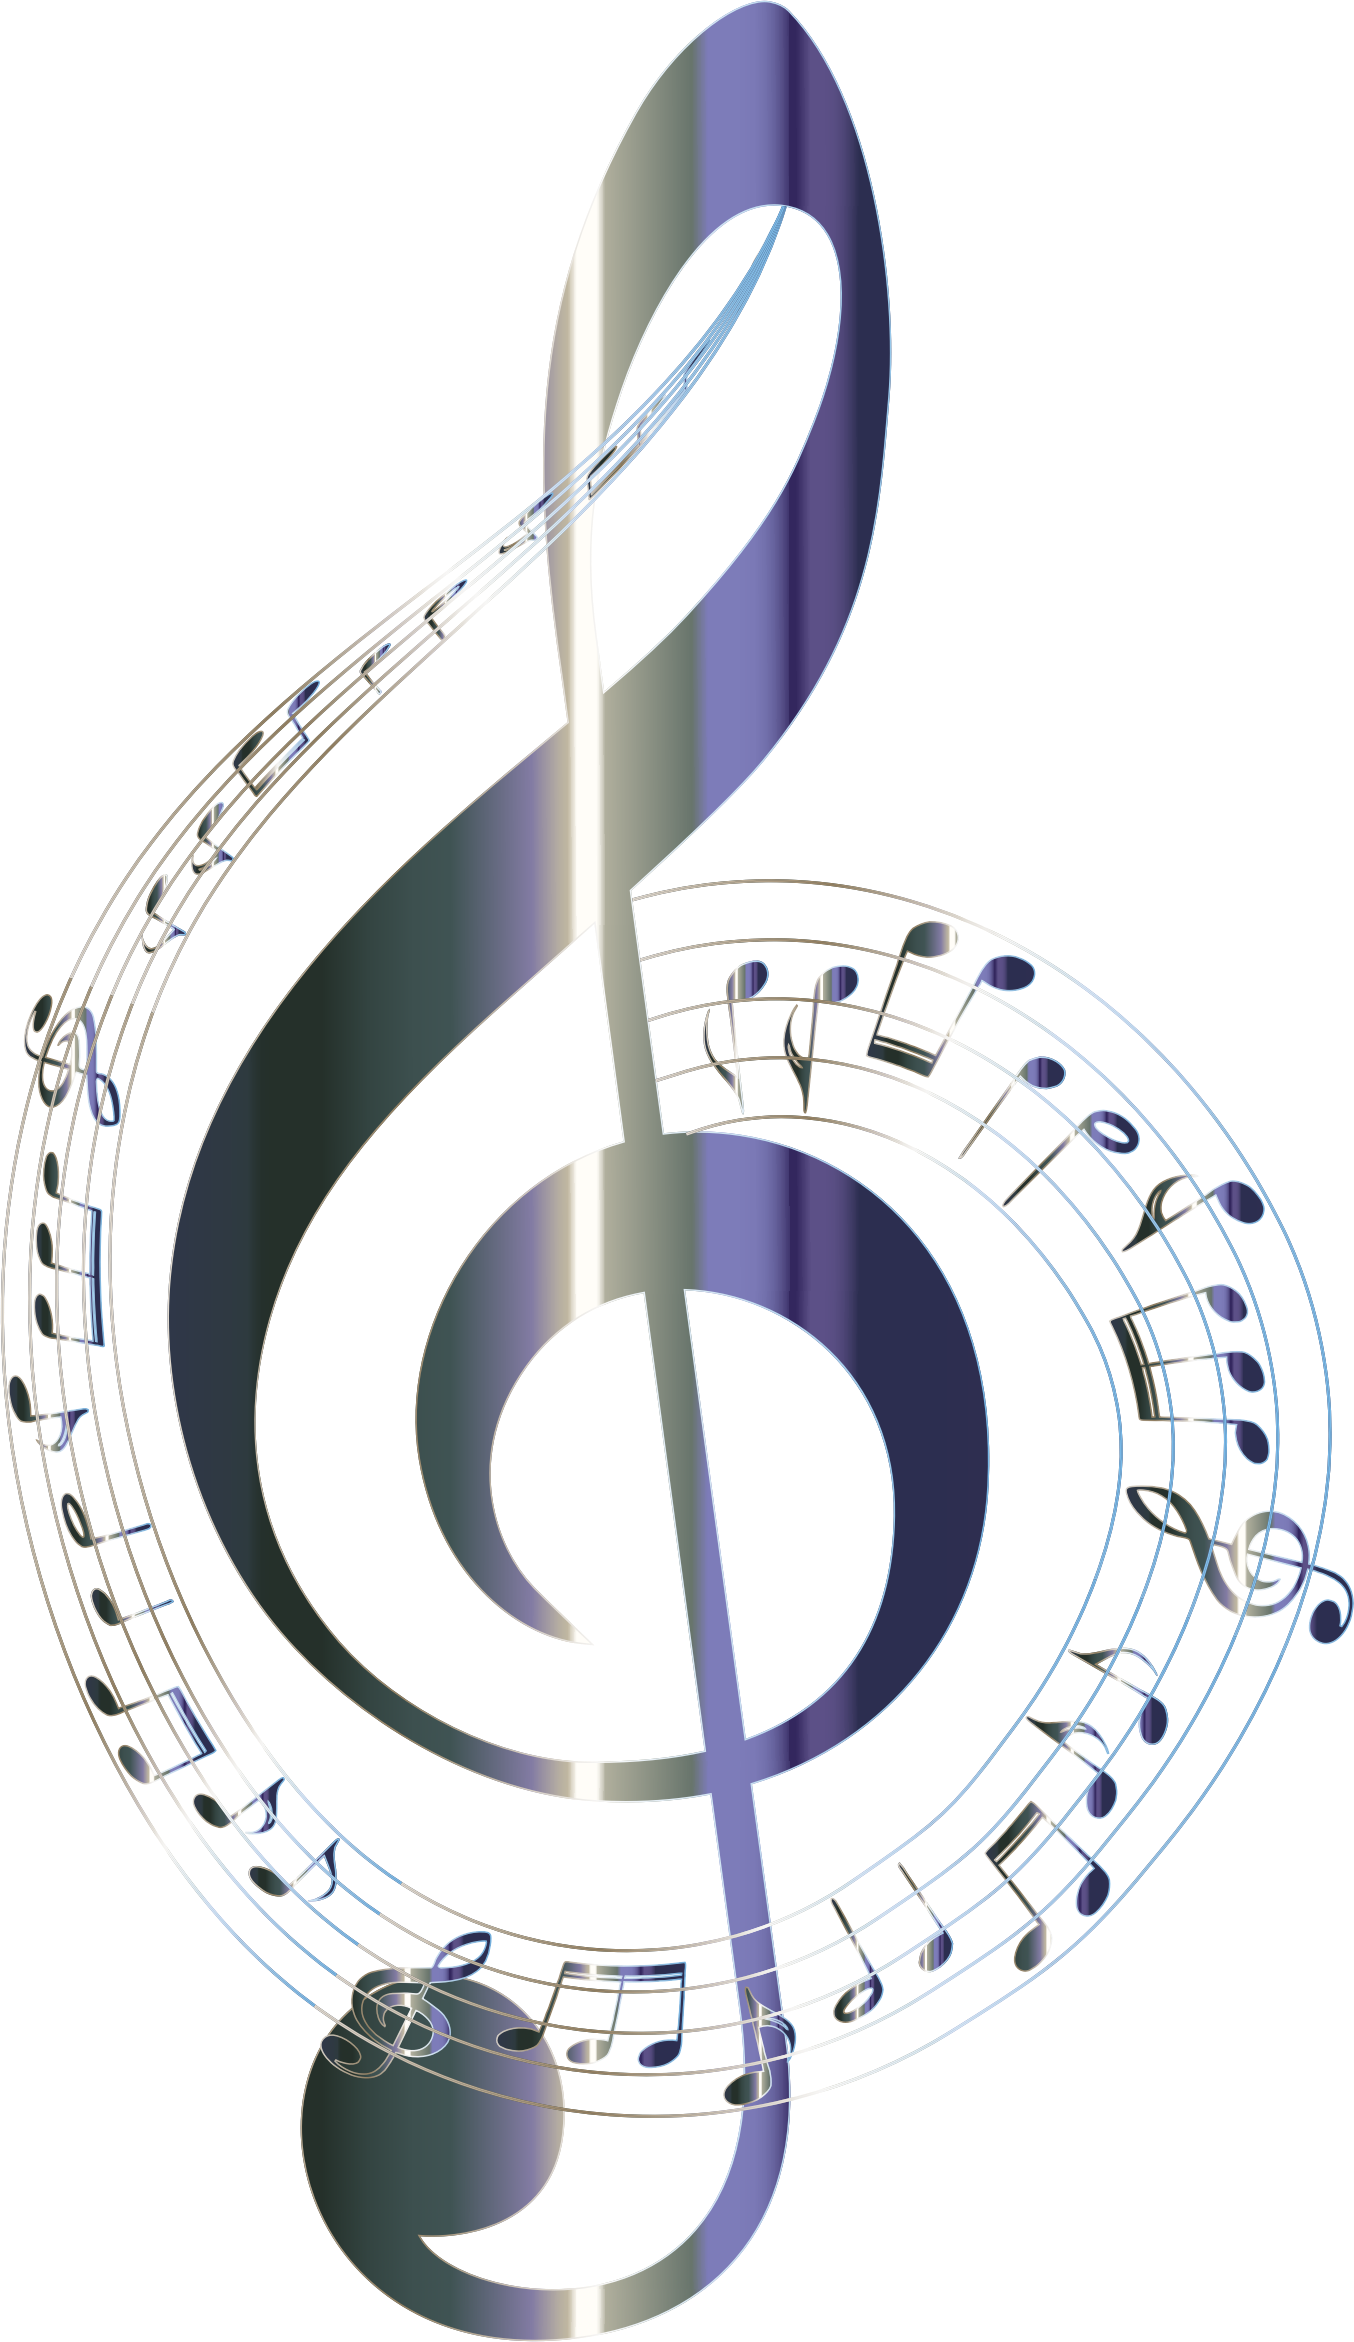 Png file format of music notes no background. Lacquered musical typography icons